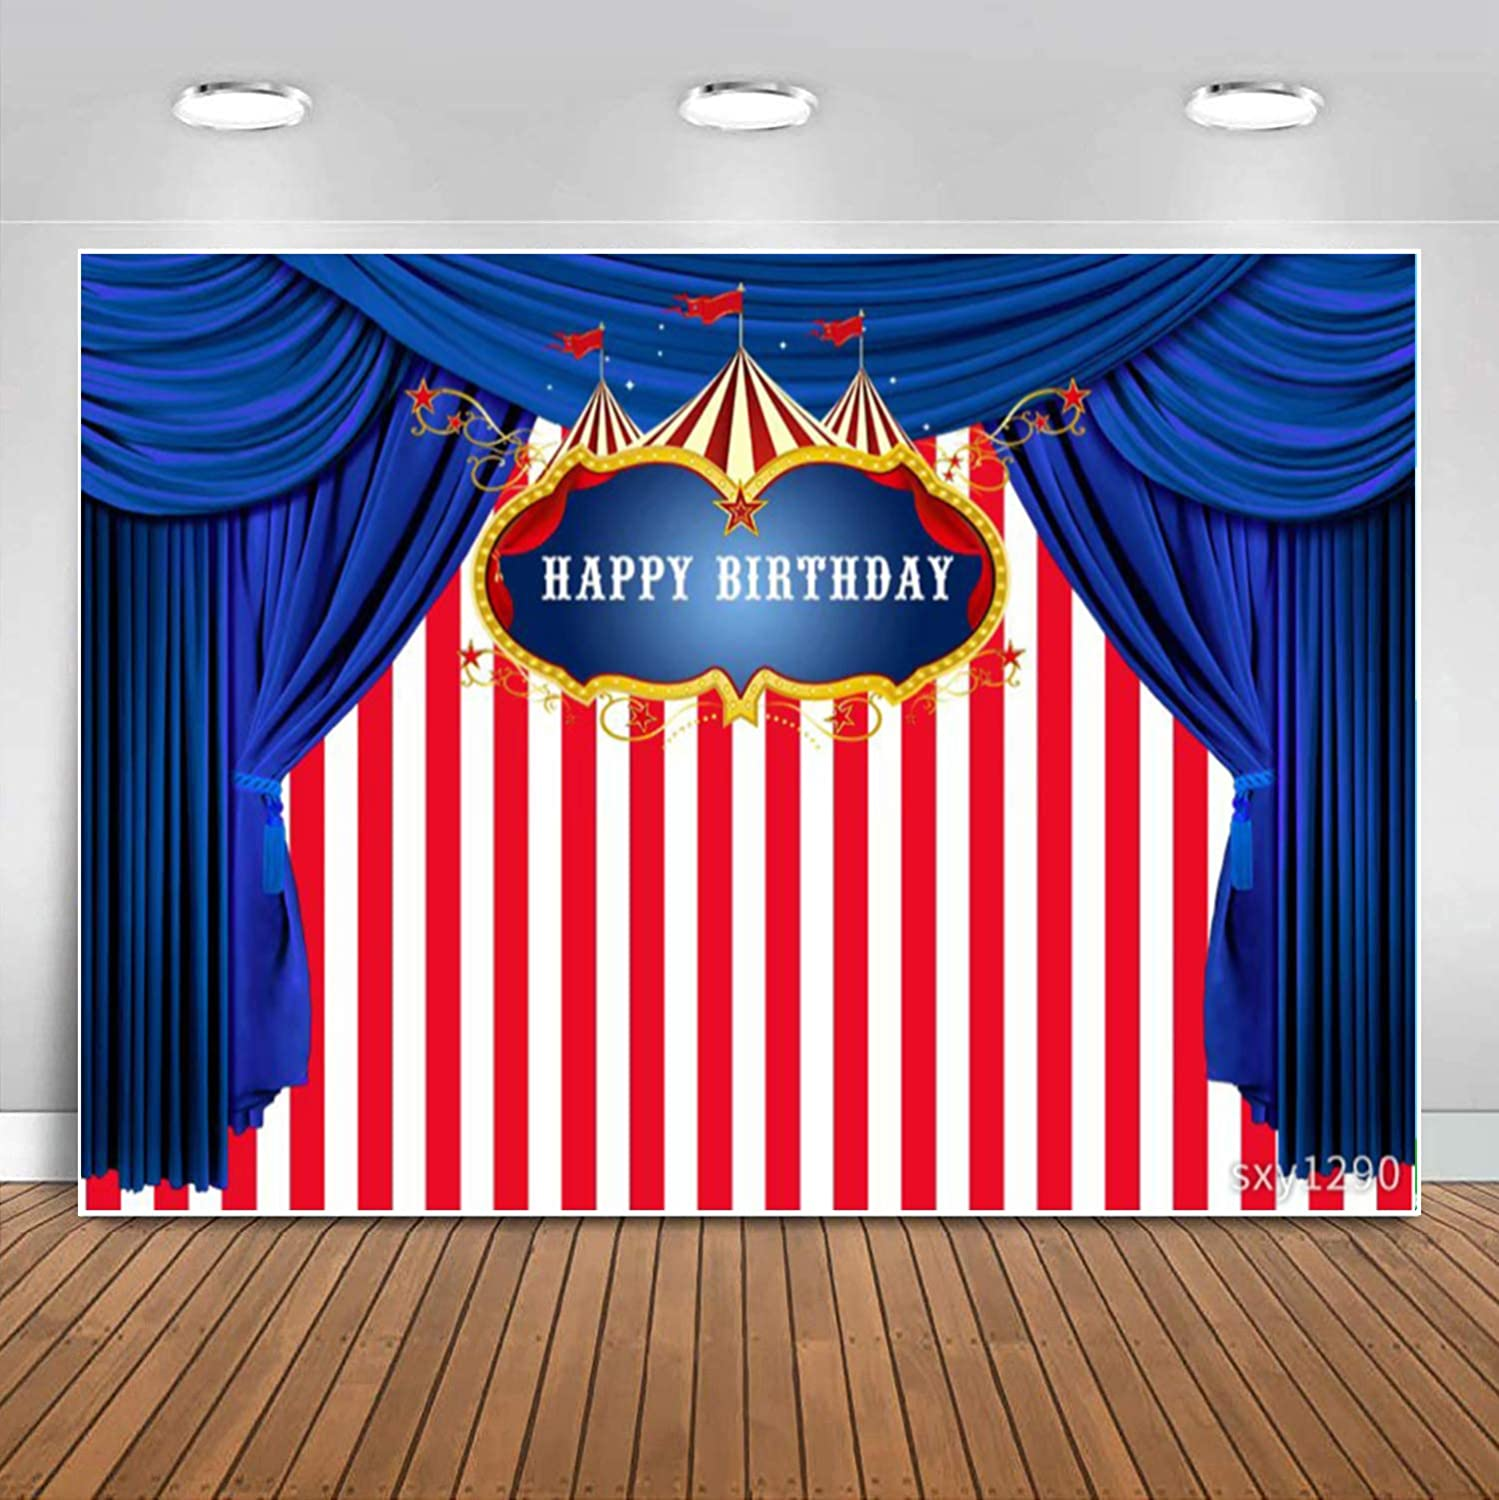 Sensfun Carnival Themed Birthday Backdrop White and Red Stripes Blue Curtain Circus Carousel Photo Background for Boy Girls 1st Birthday Party Decor Bday Dessert Table Banner Photobooth Props 10x6.5ft